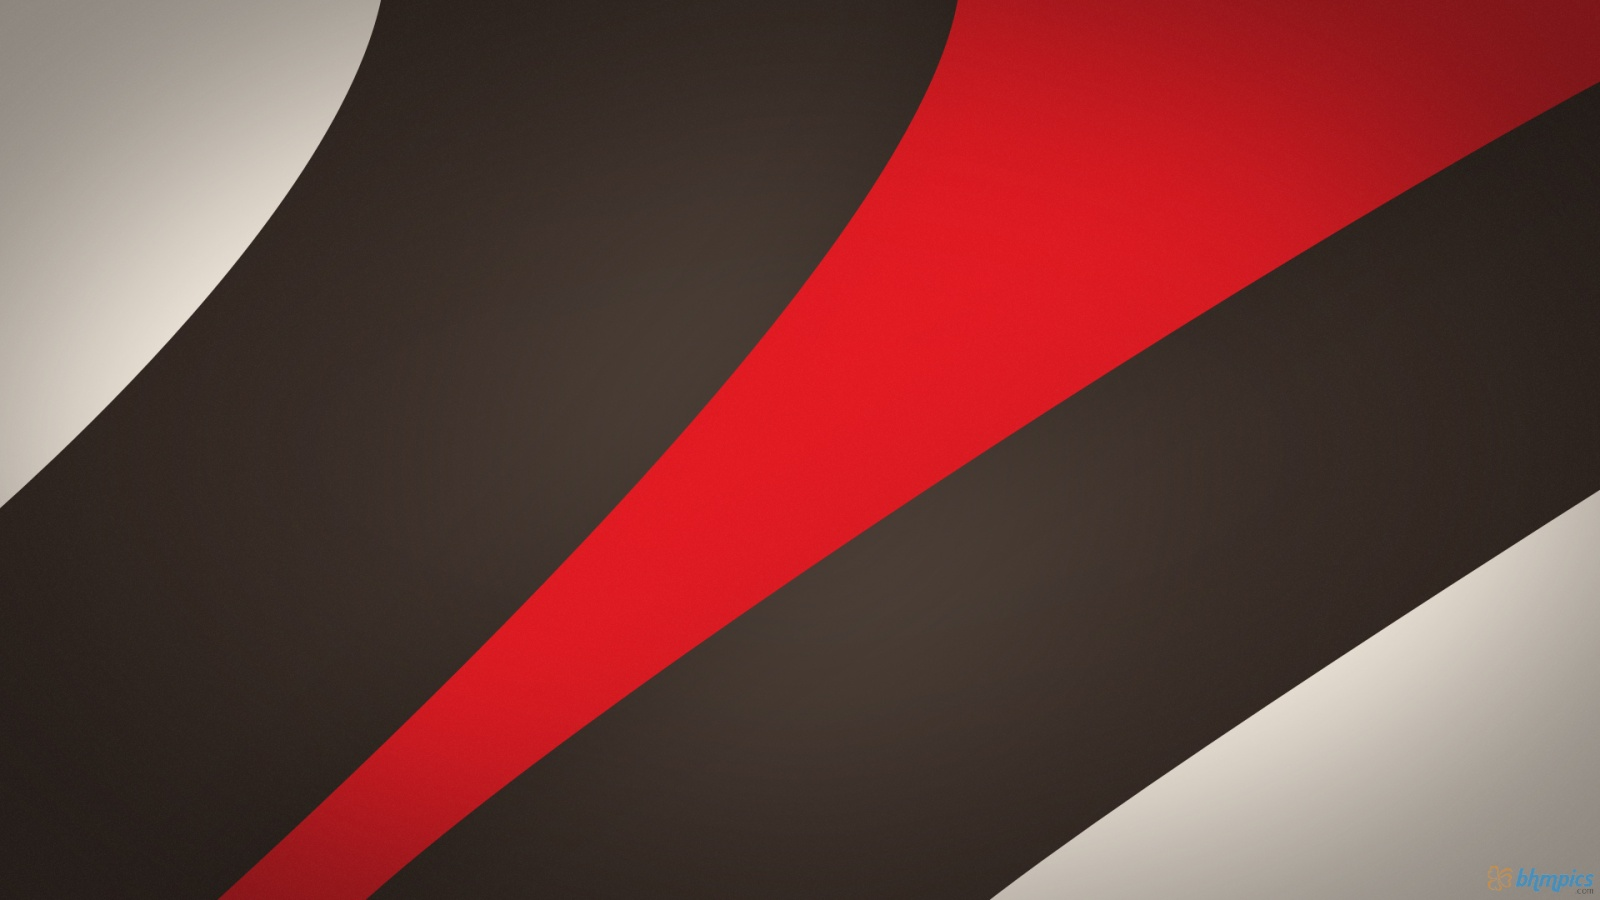 Red And Black Abstract Wallpaper   HD Wallpapers Lovely 1600x900